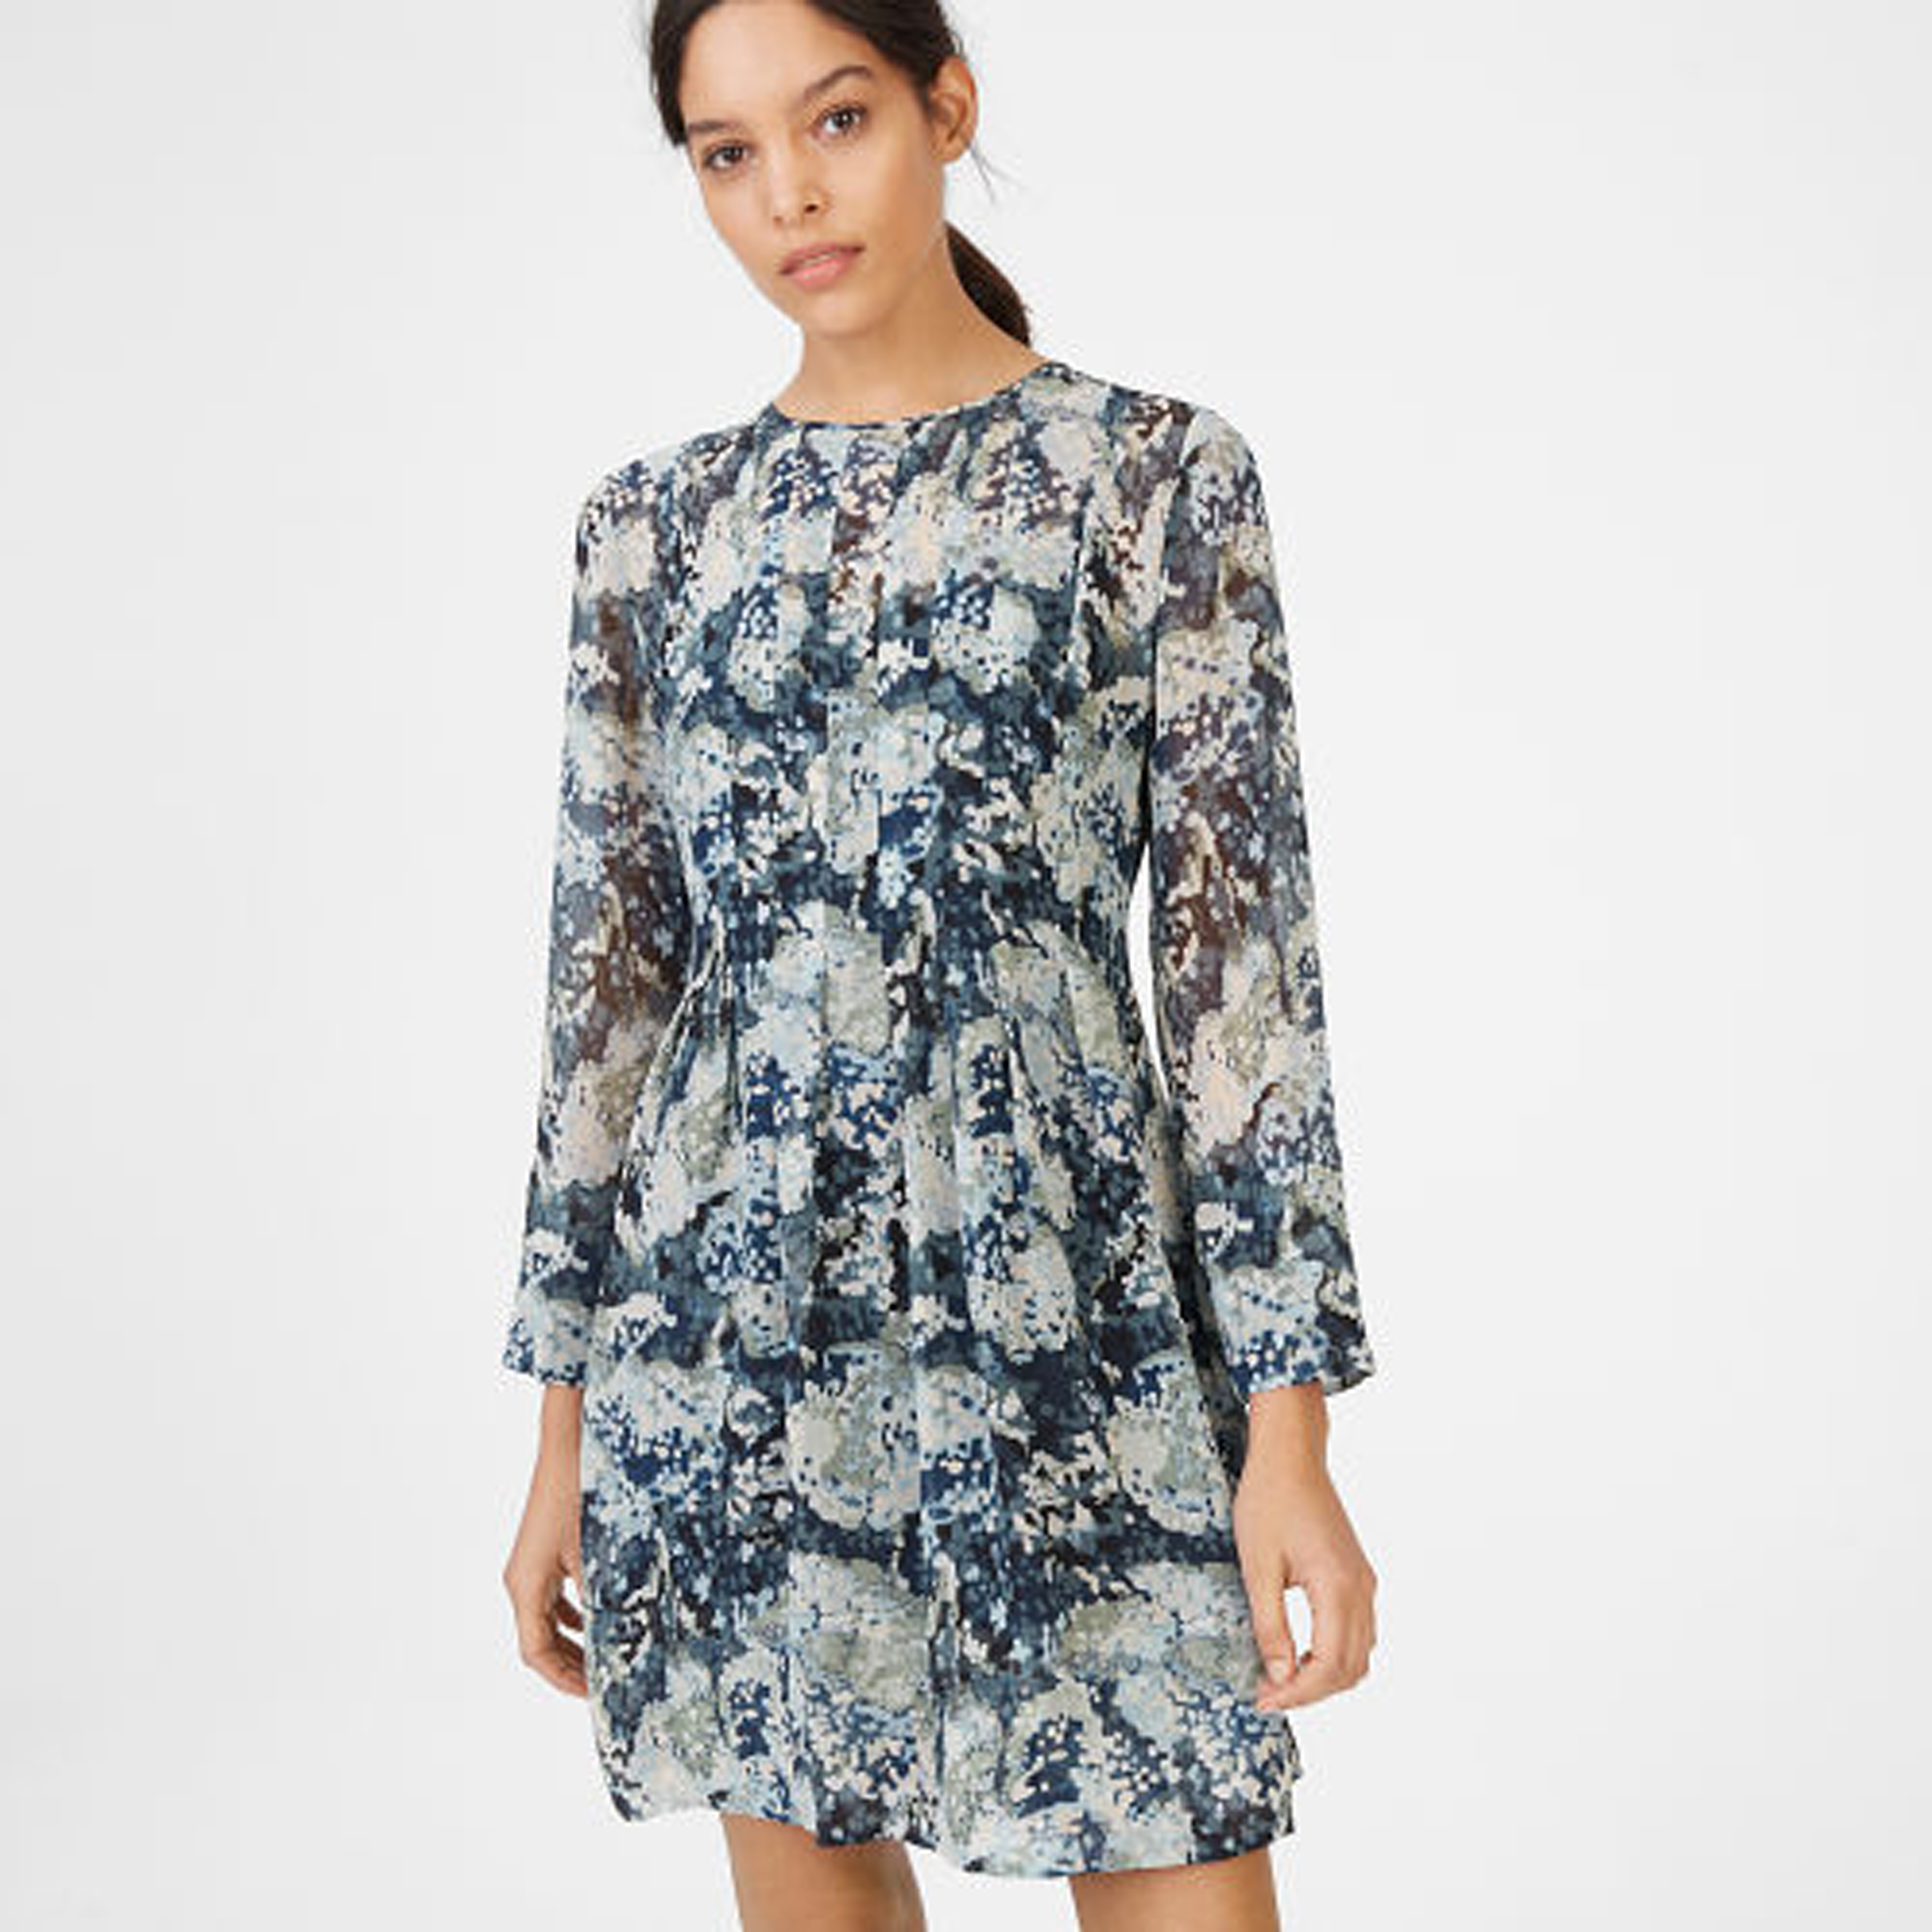 Delaynee Dress   HK$2,690